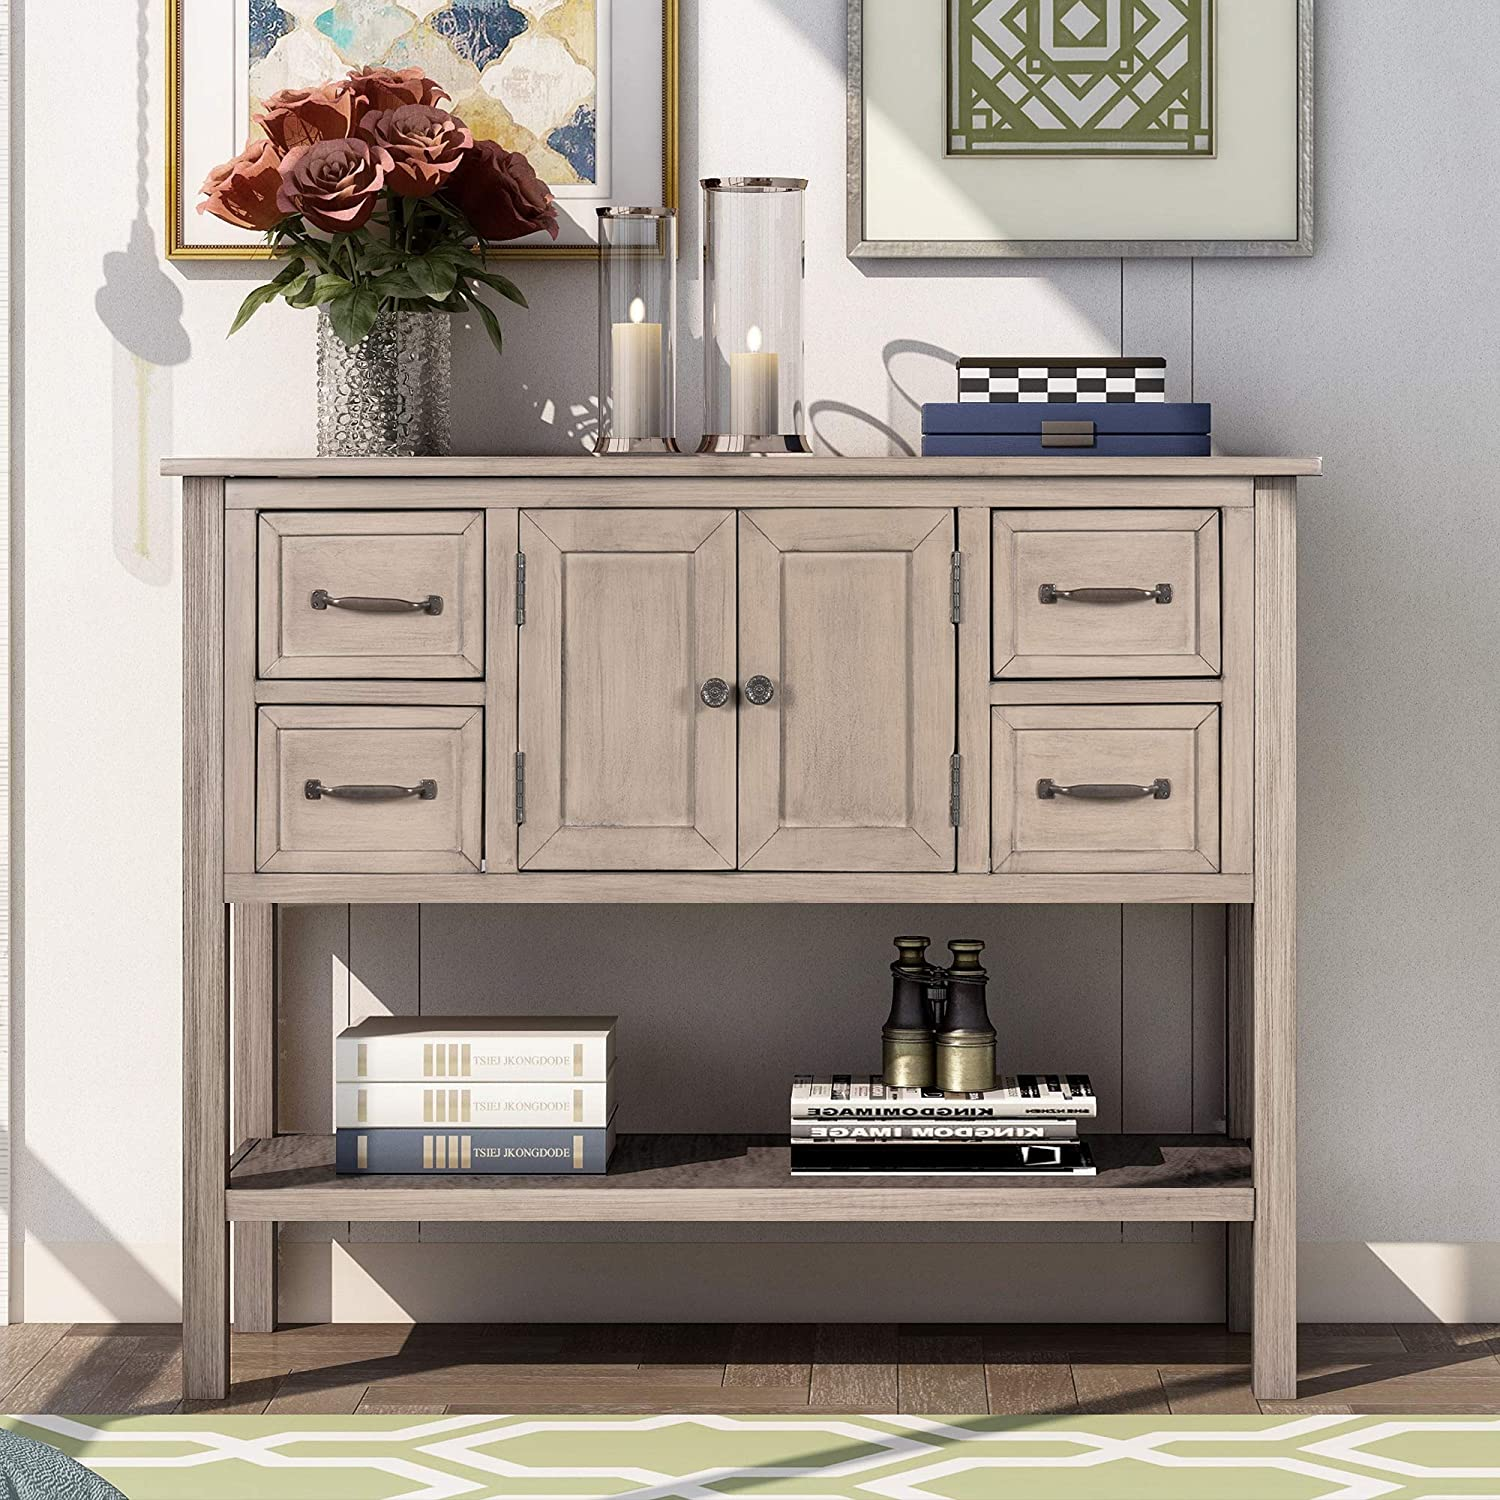 1 year warranty Narrow Console Sofa Table with 4 Shelf and for Drawers Long Special price Livi